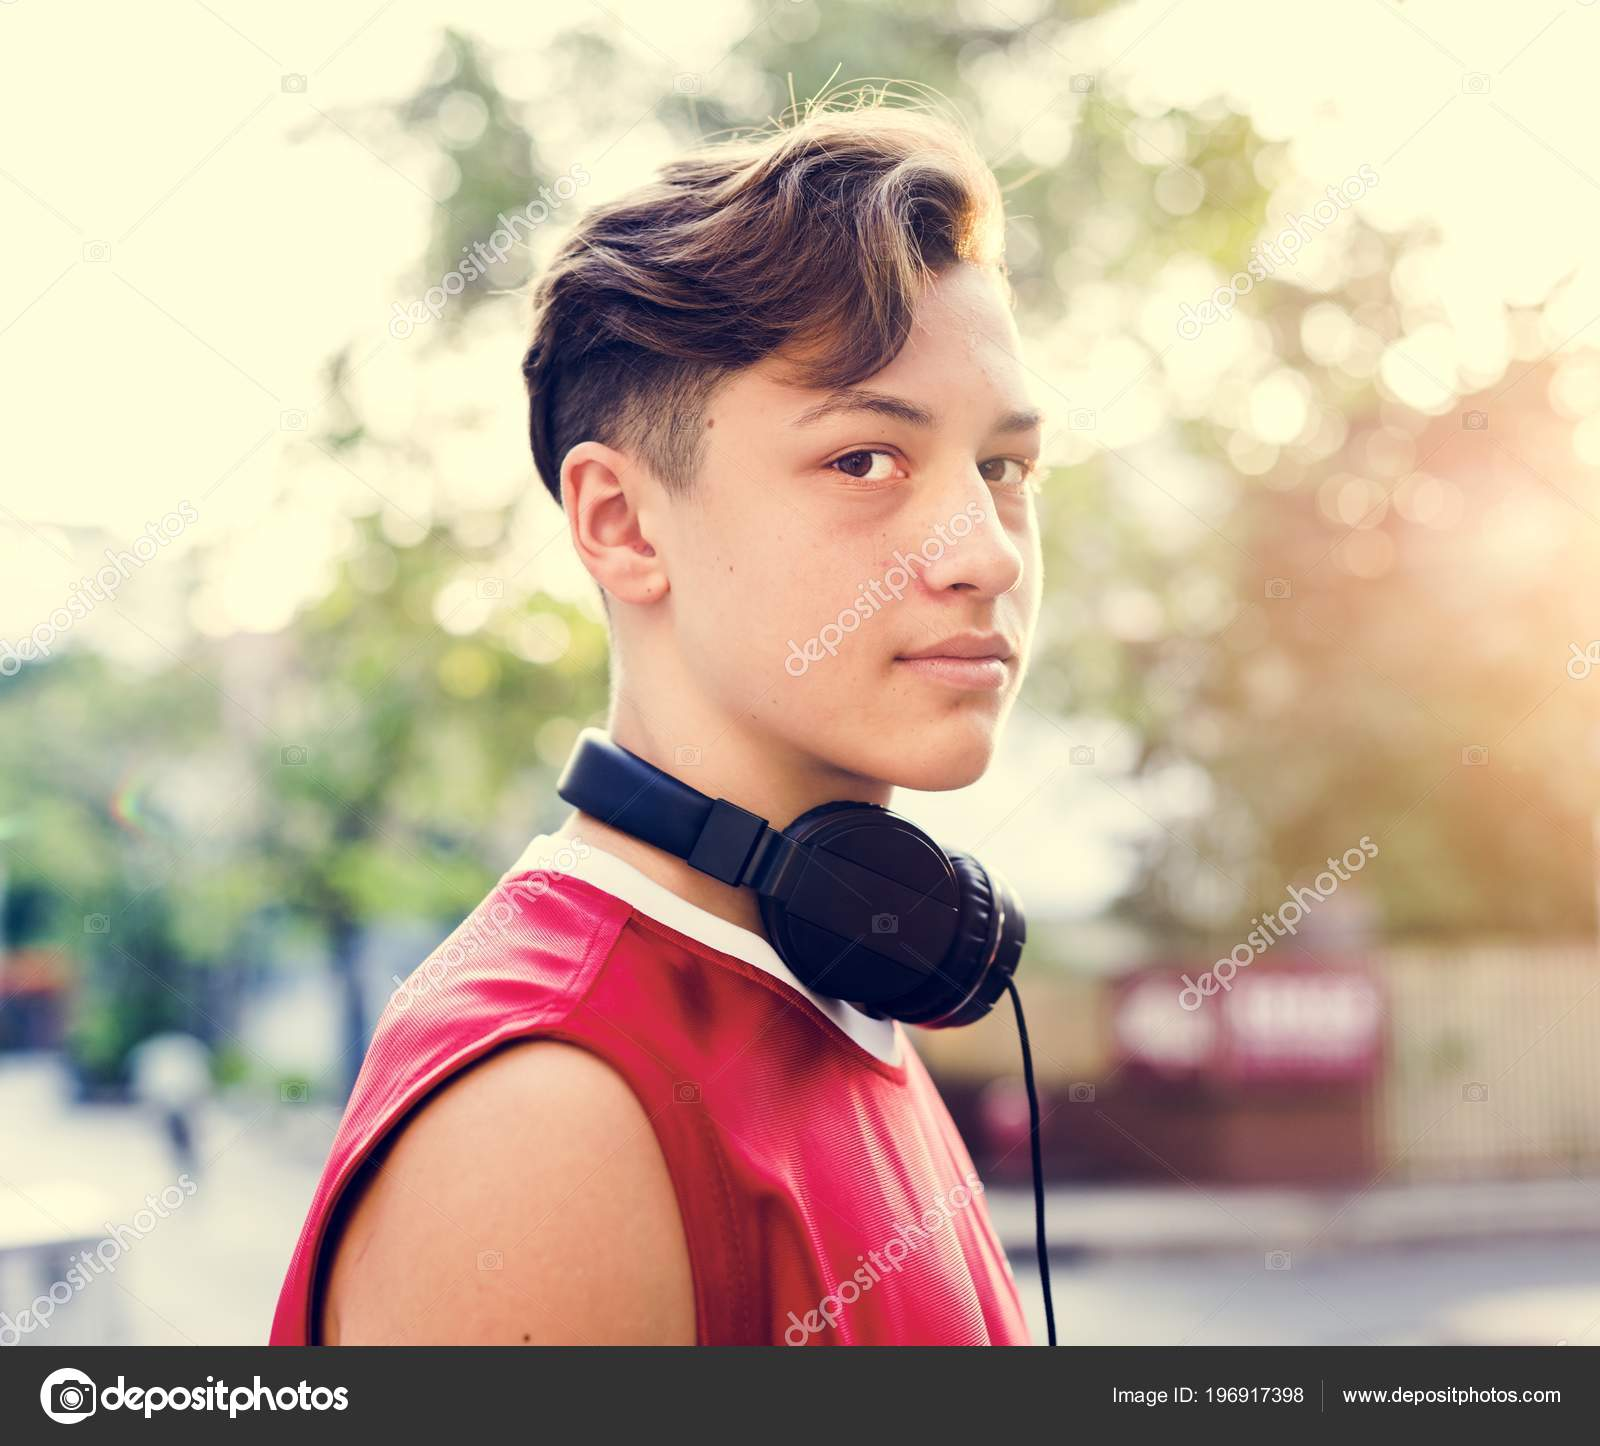 sporty teenage boy outdoors looking camera portrait \u2014 stock photo